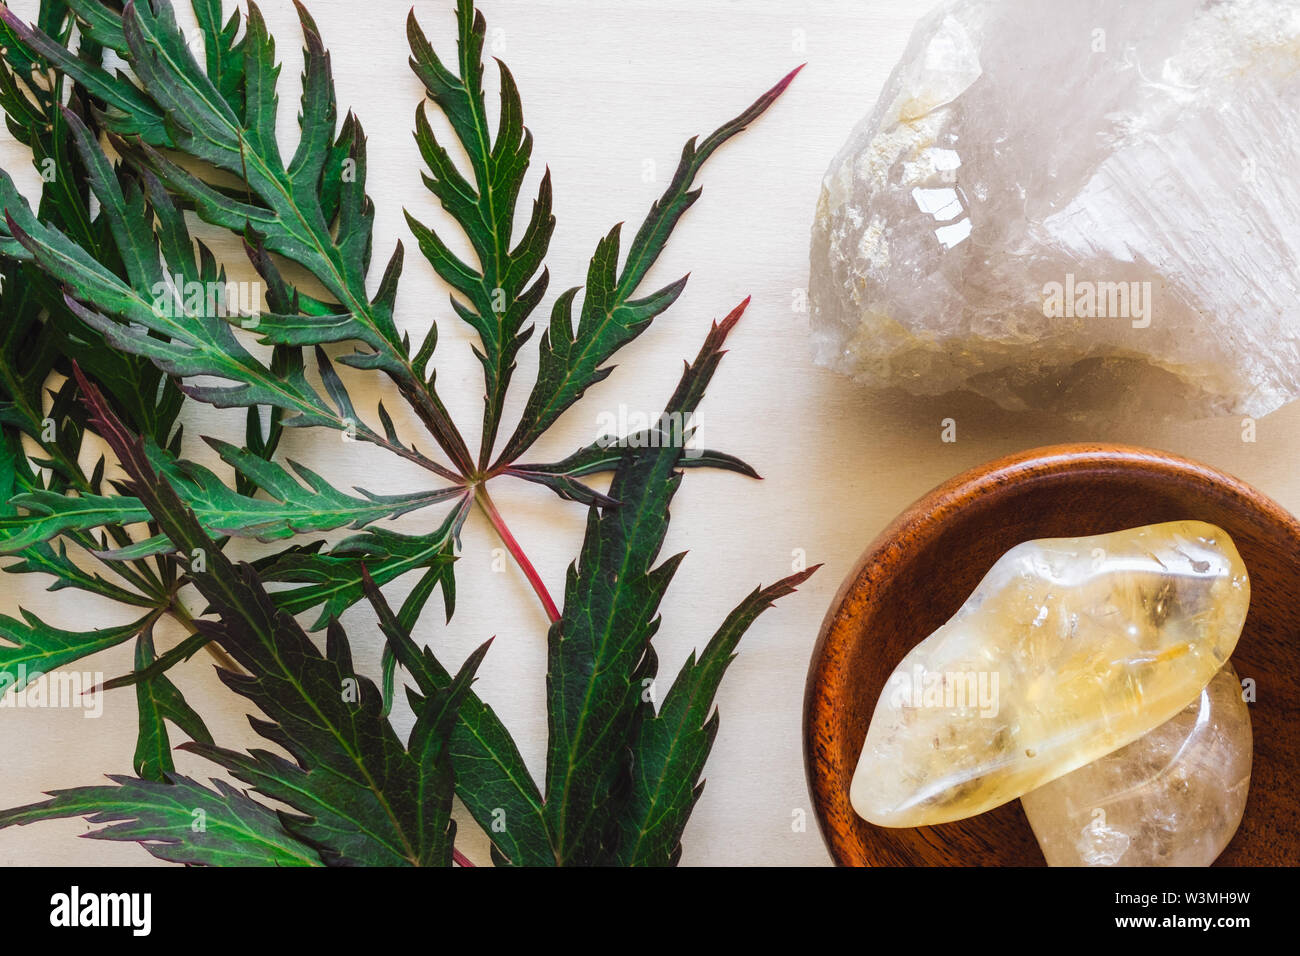 Citrine with Quartz and Japanese Maple Leaves on Wood - Stock Image